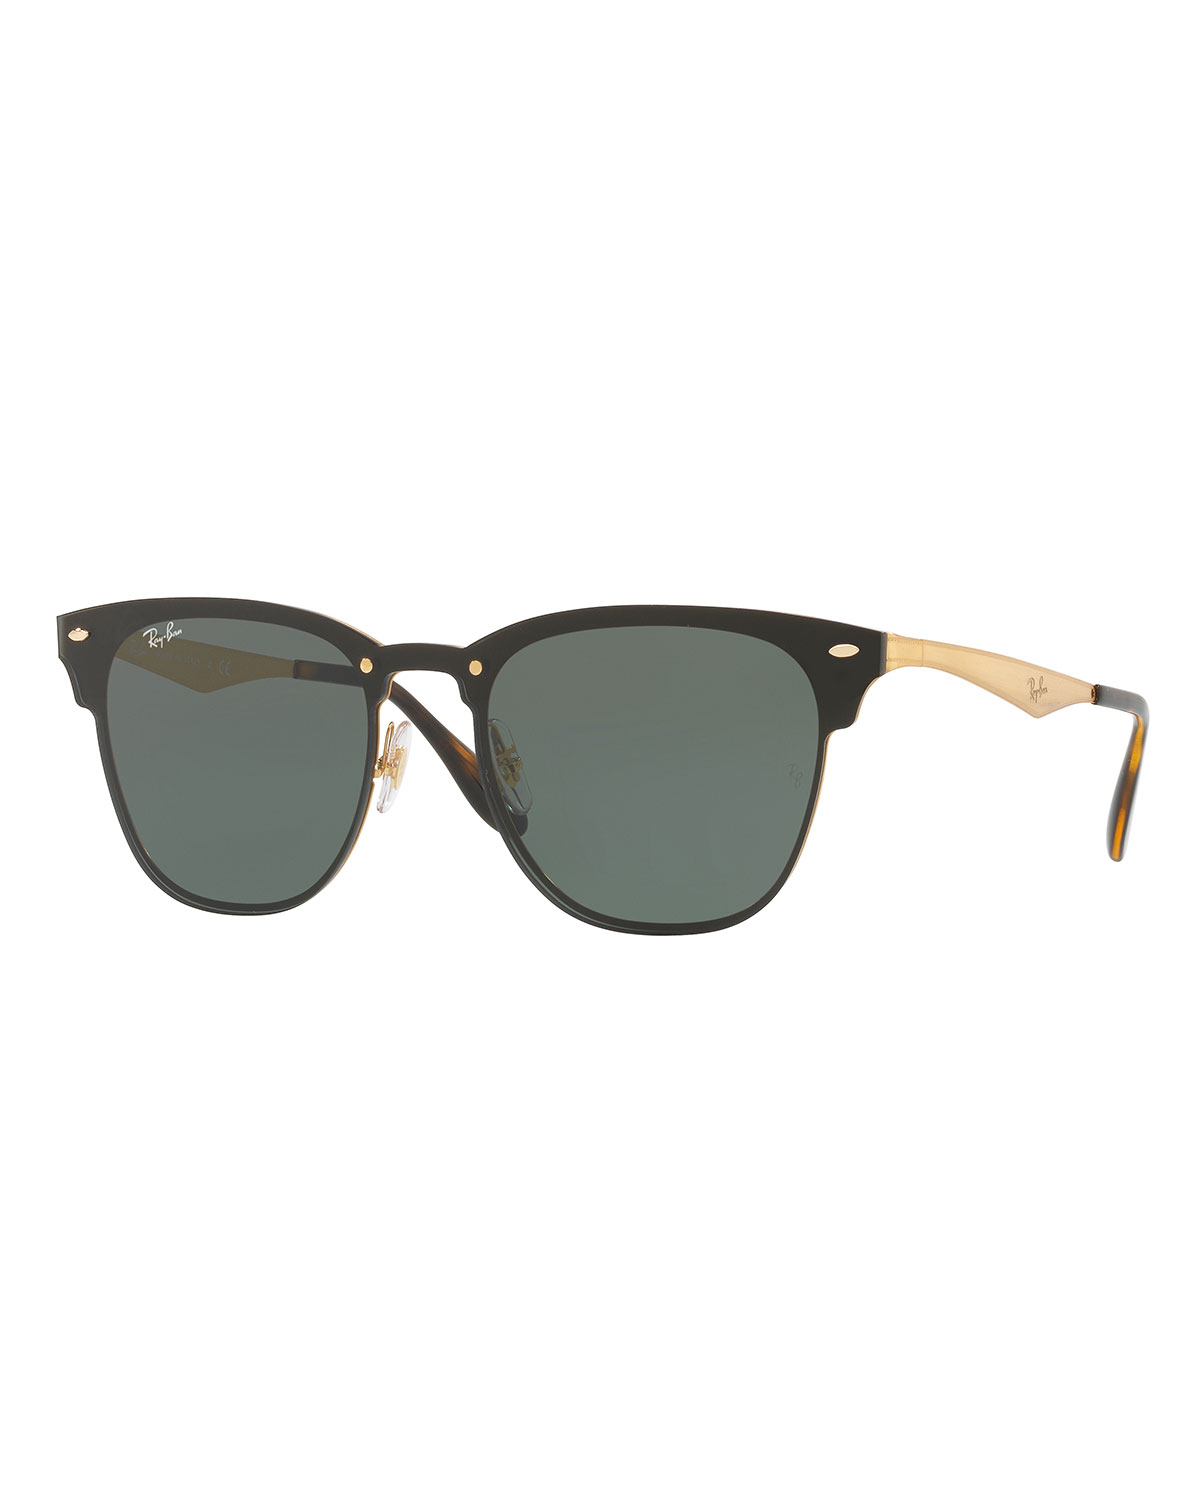 9b4175d59ef Quick Look. Ray-Ban · Blaze Clubmaster Lens-Over-Frame Sunglasses